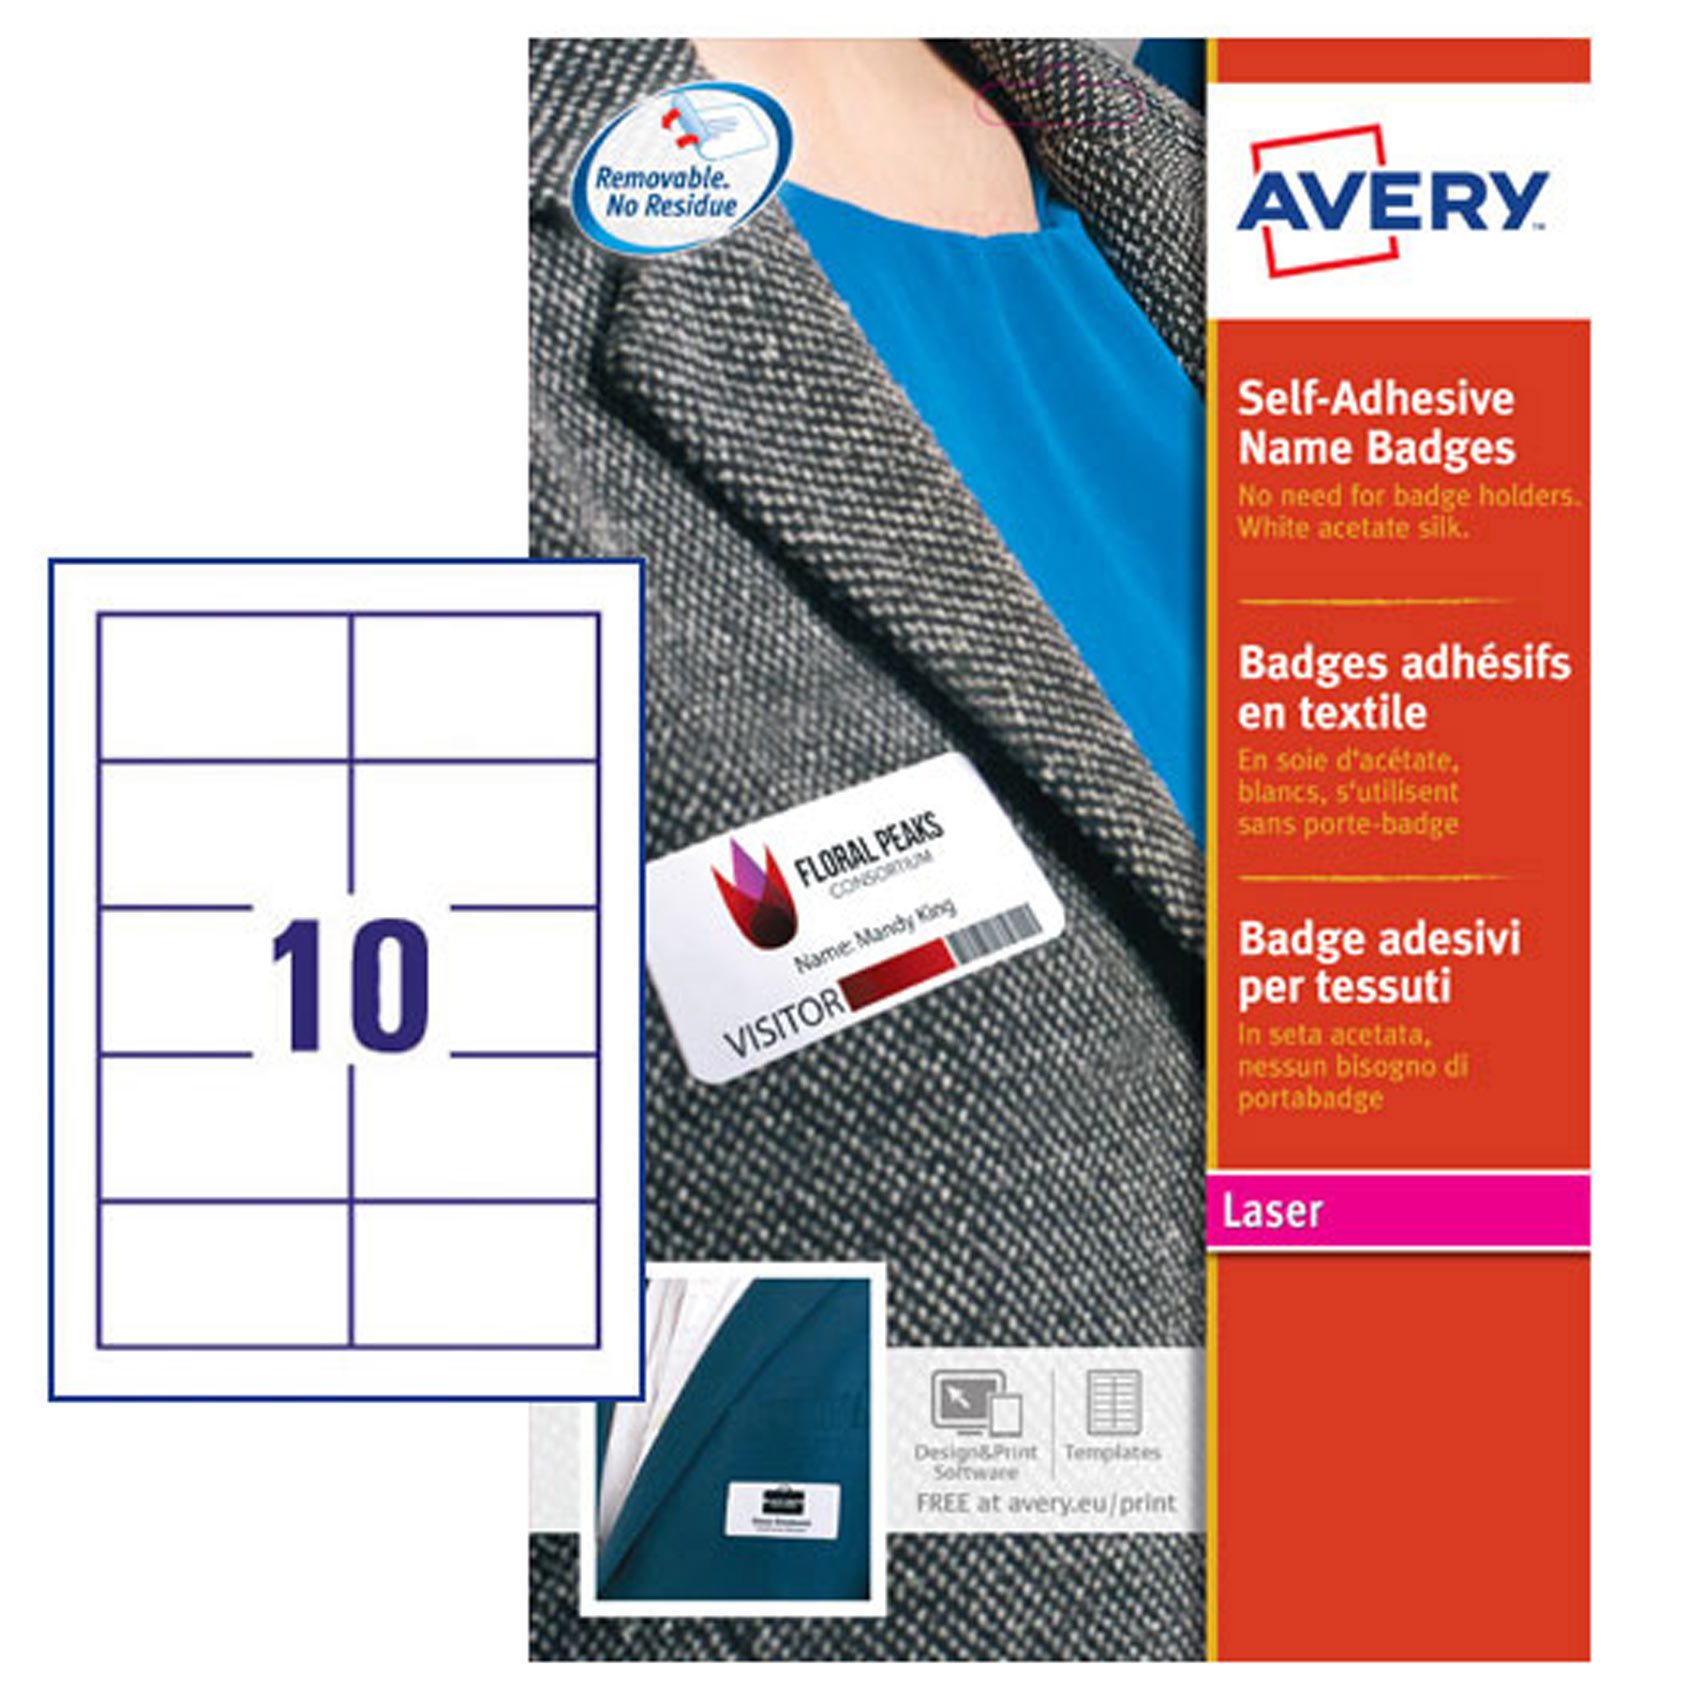 buy avery name badge self adhesive l4785 20 online shop avery on